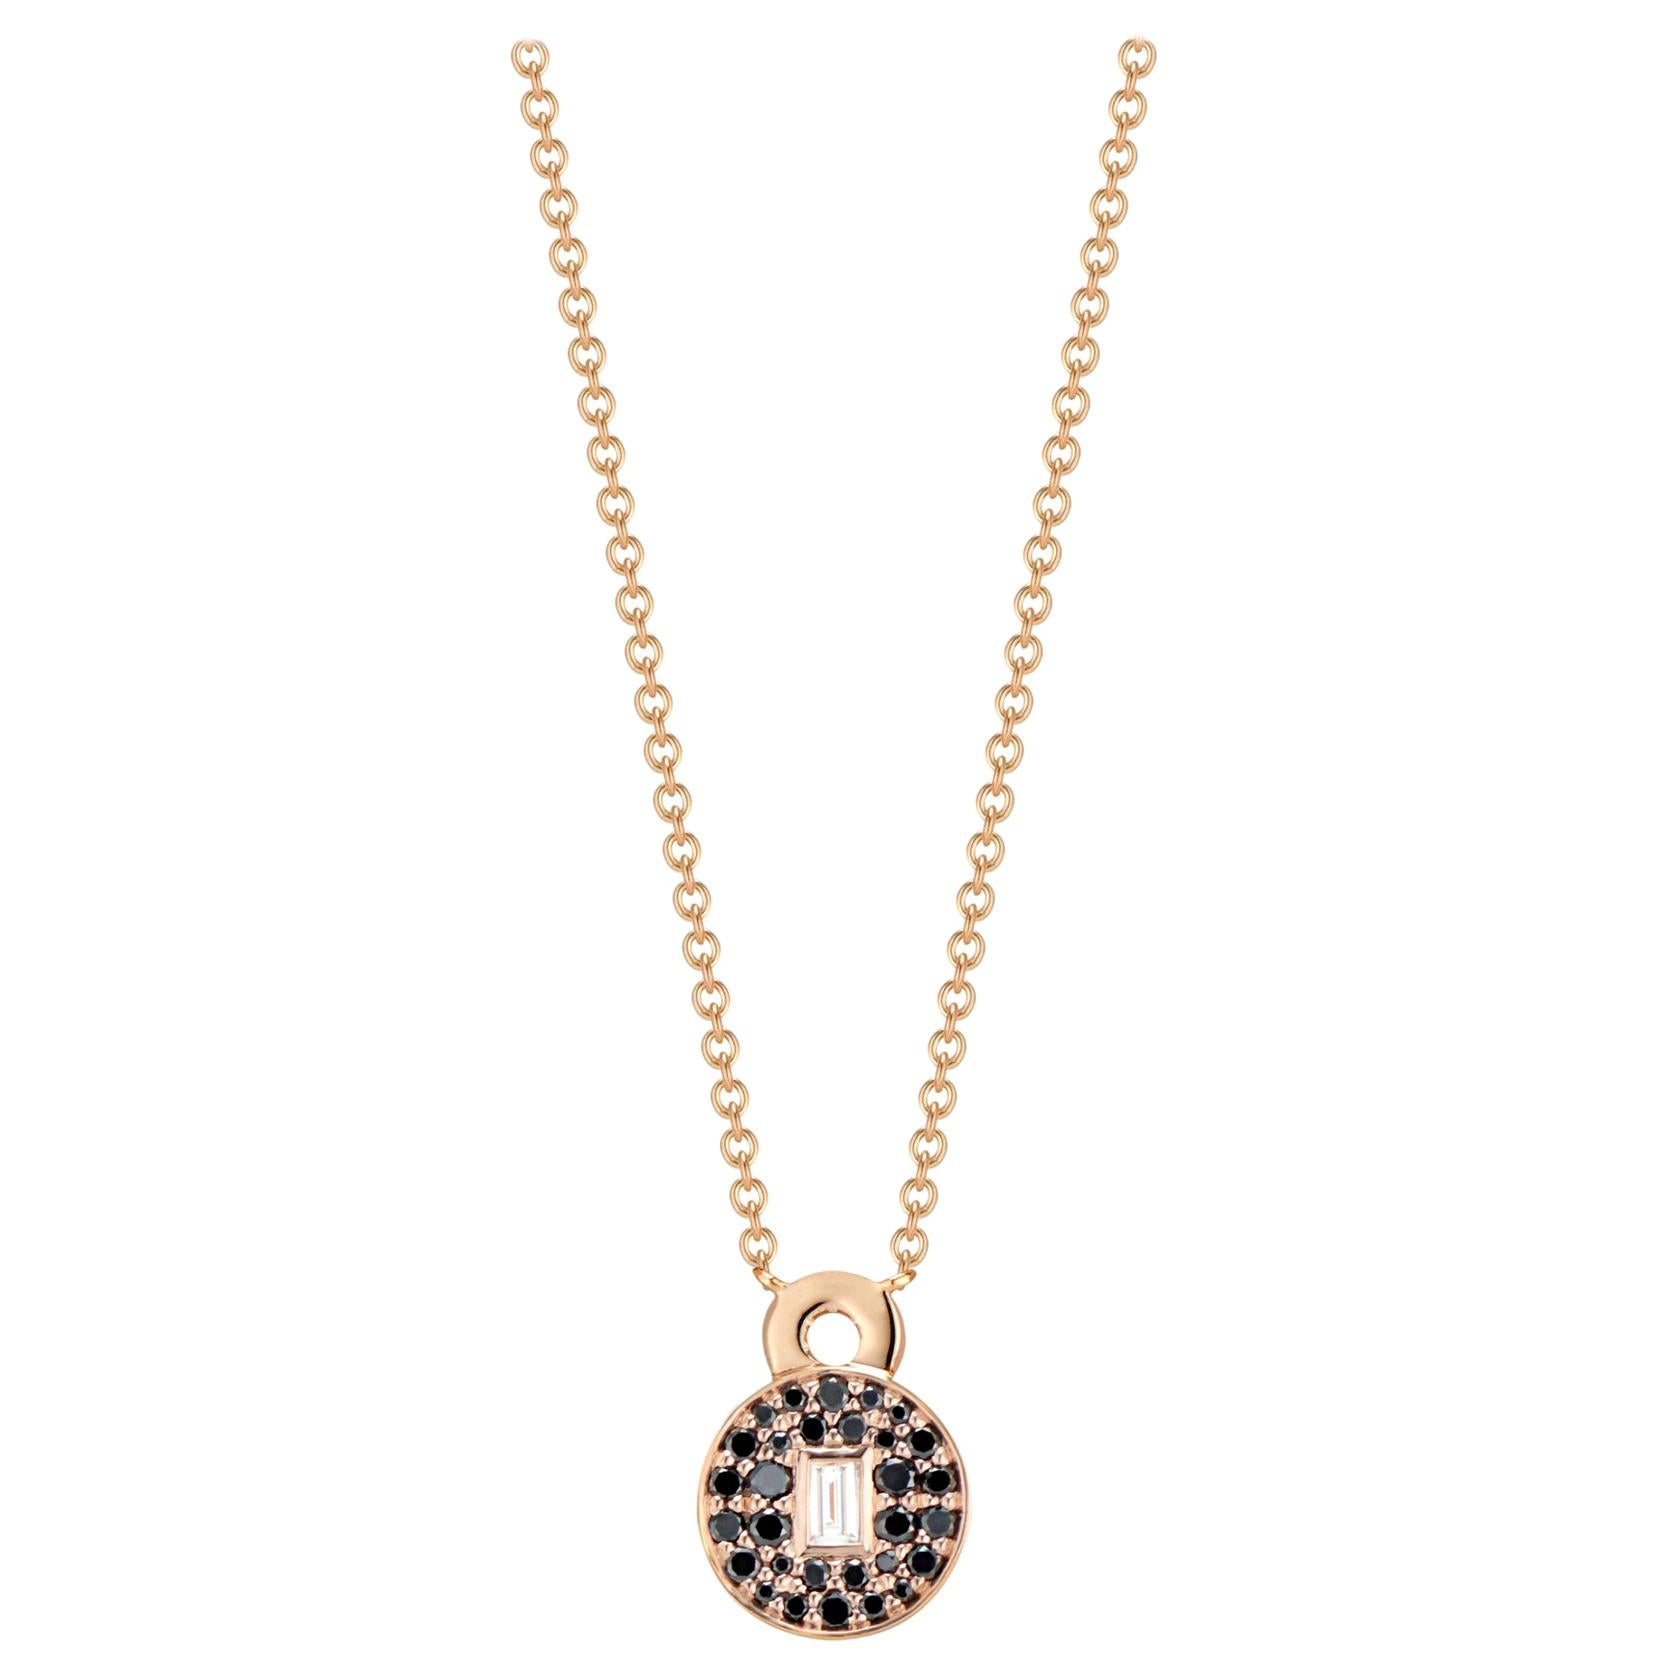 Love Lock Necklace with Black Diamonds and Baguette Diamond Solitaire